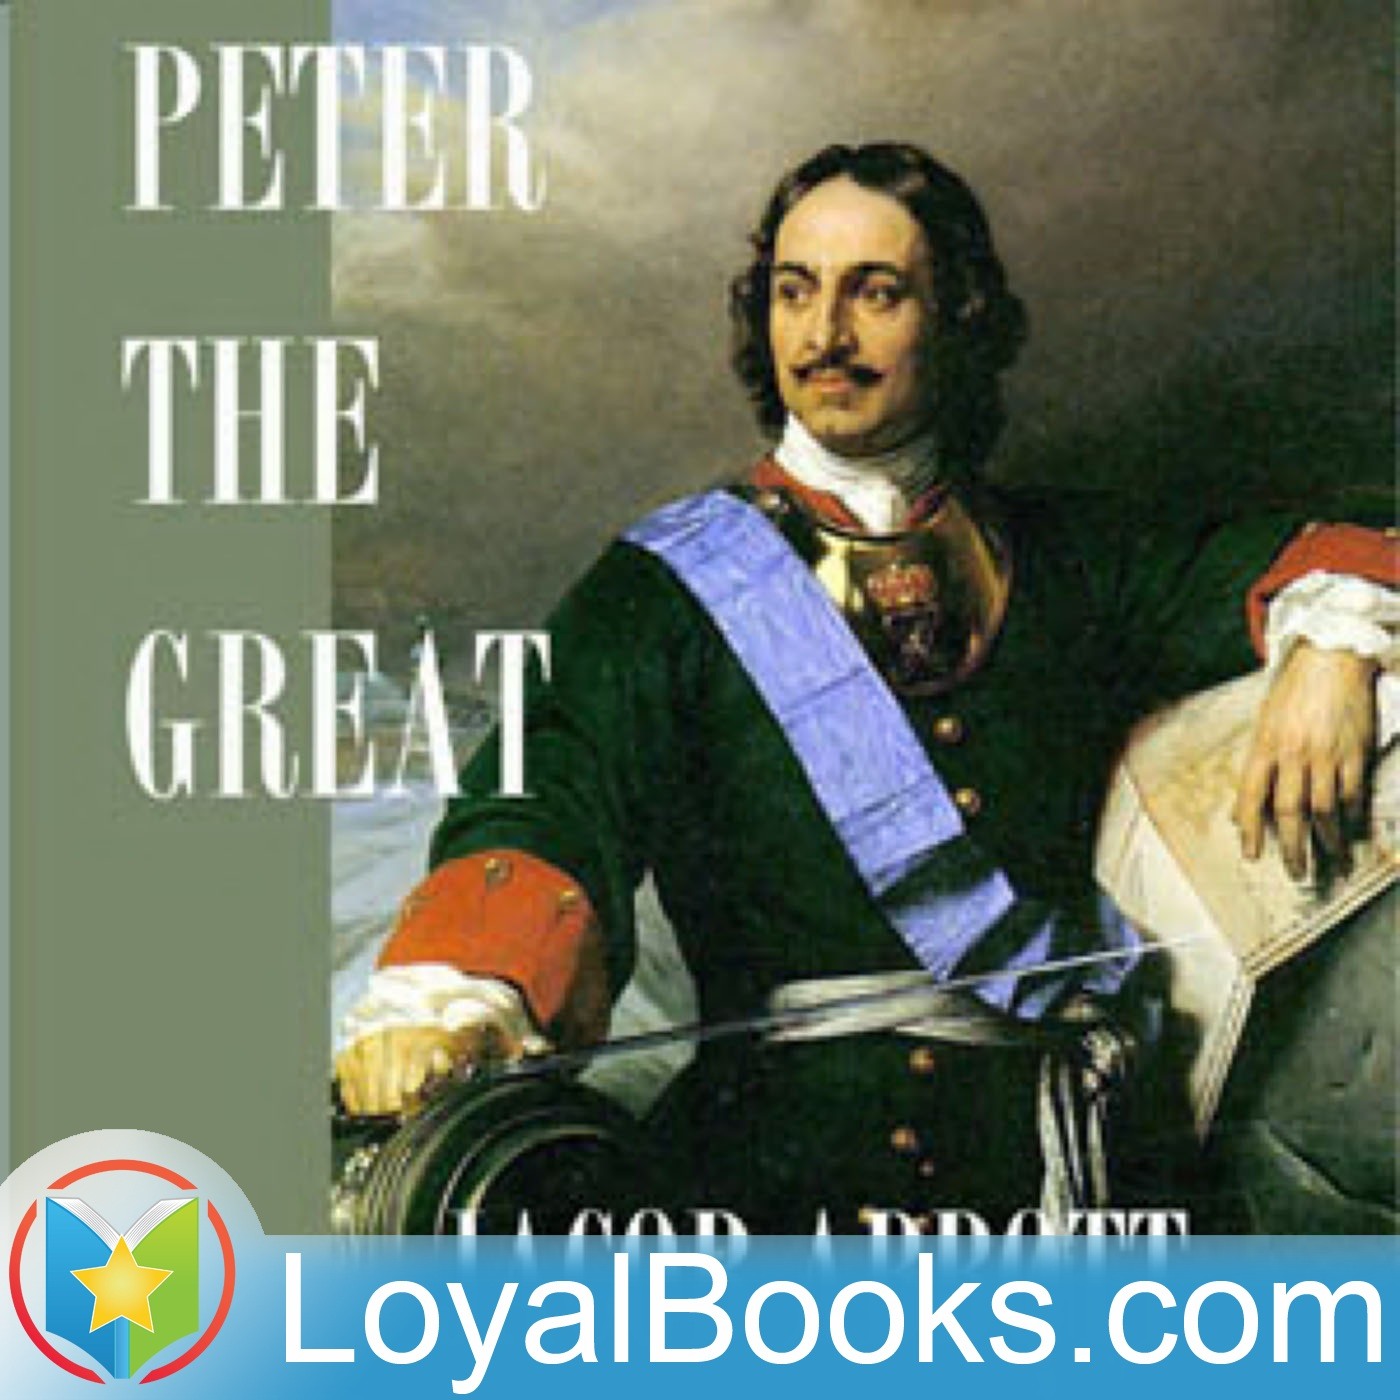 <![CDATA[Peter the Great by Jacob Abbott]]>